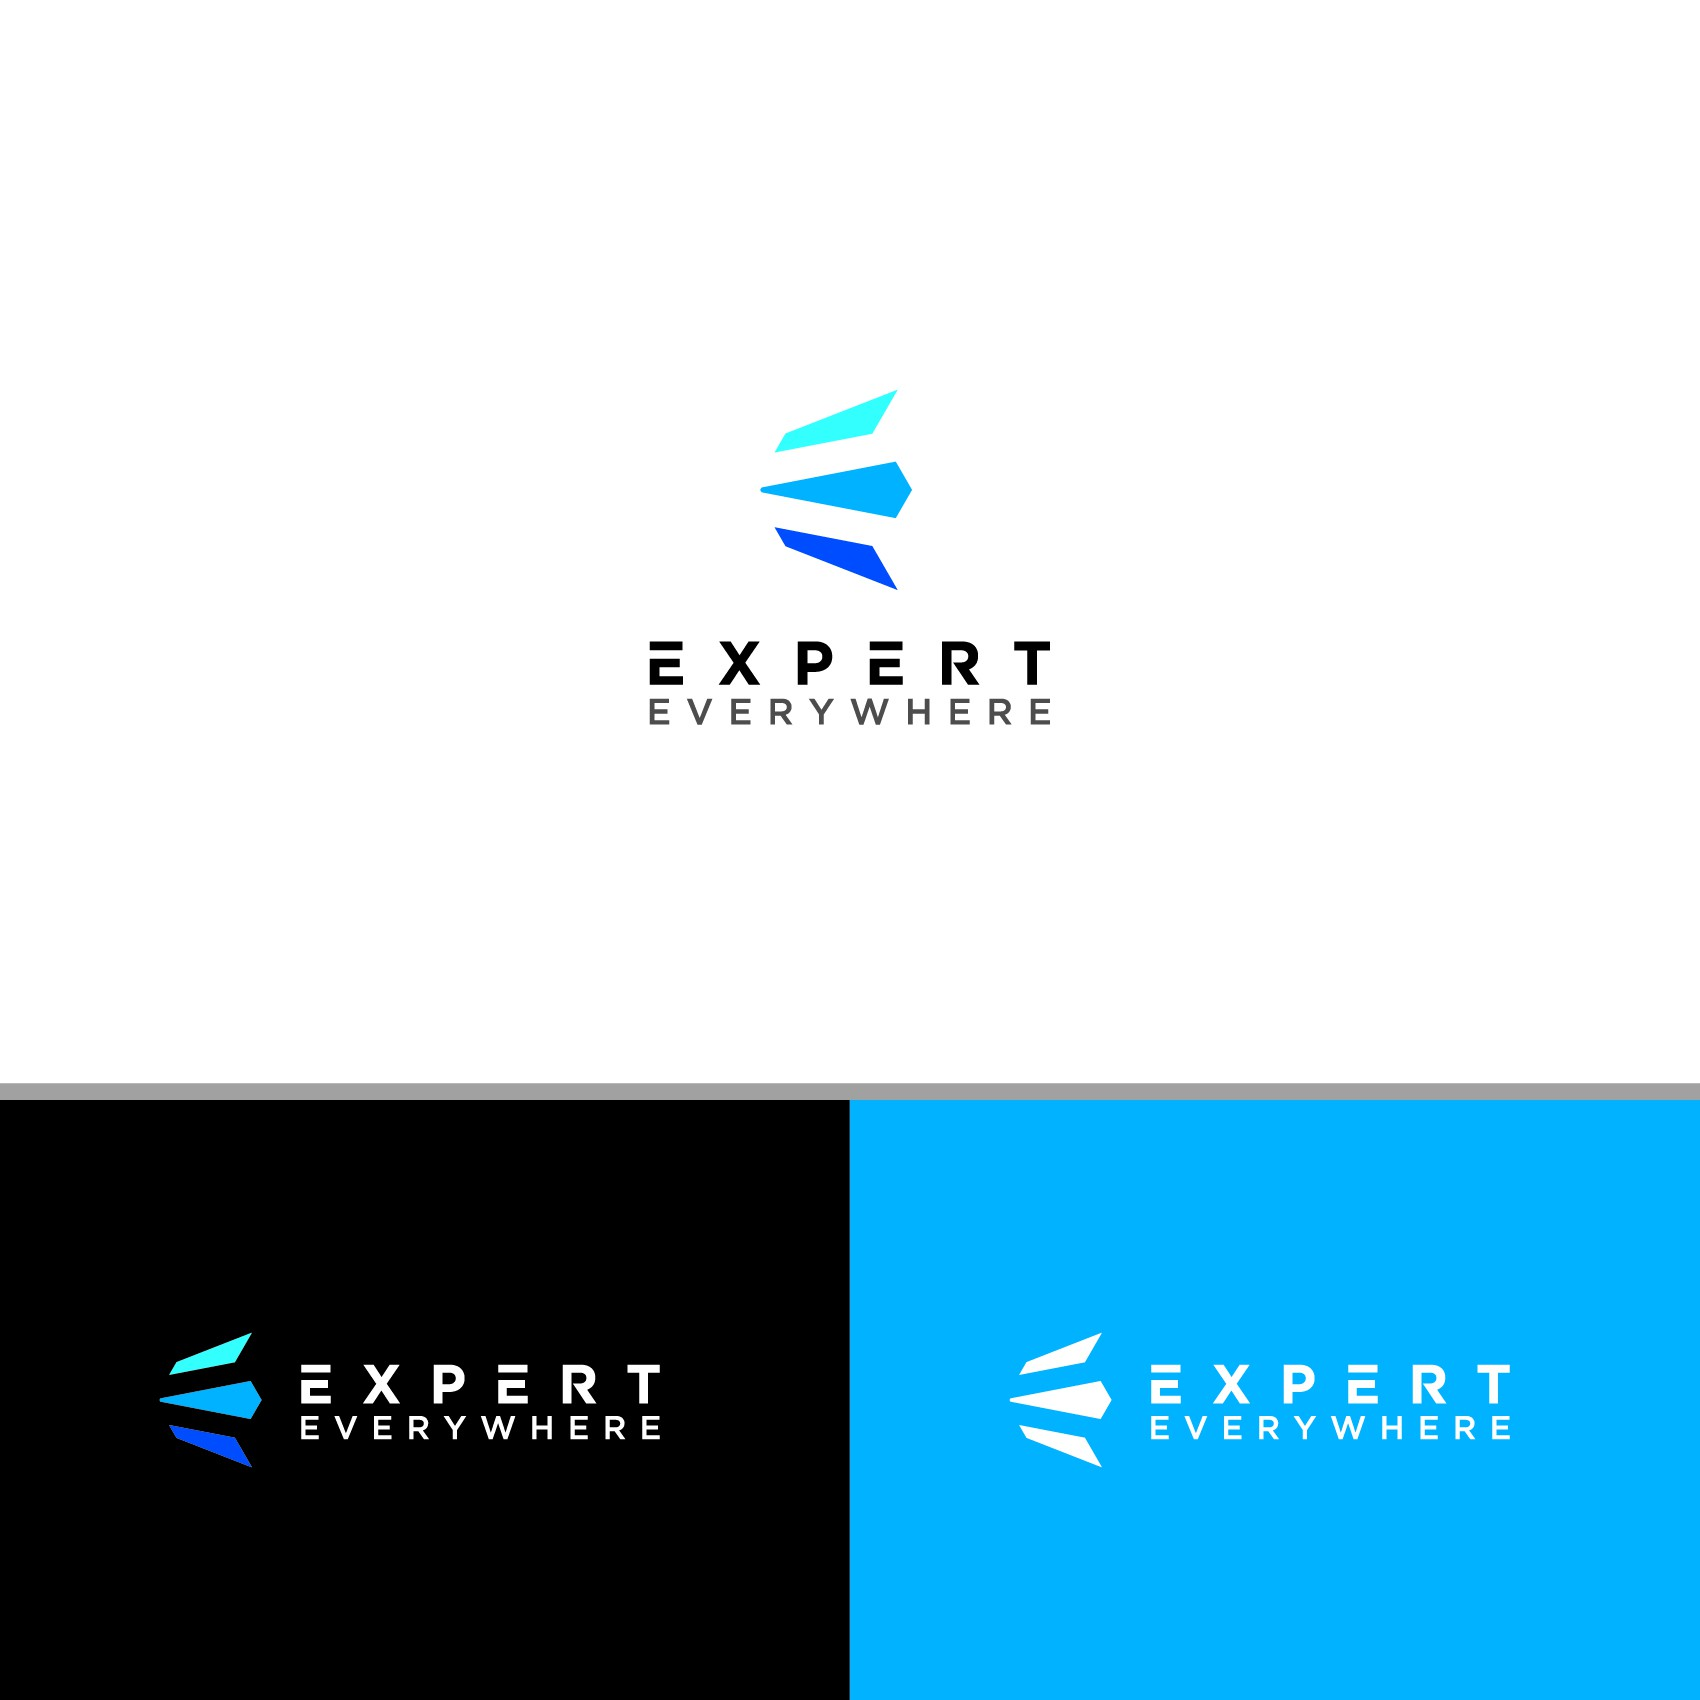 High-End Logo to Attract People Seeking Expert Status